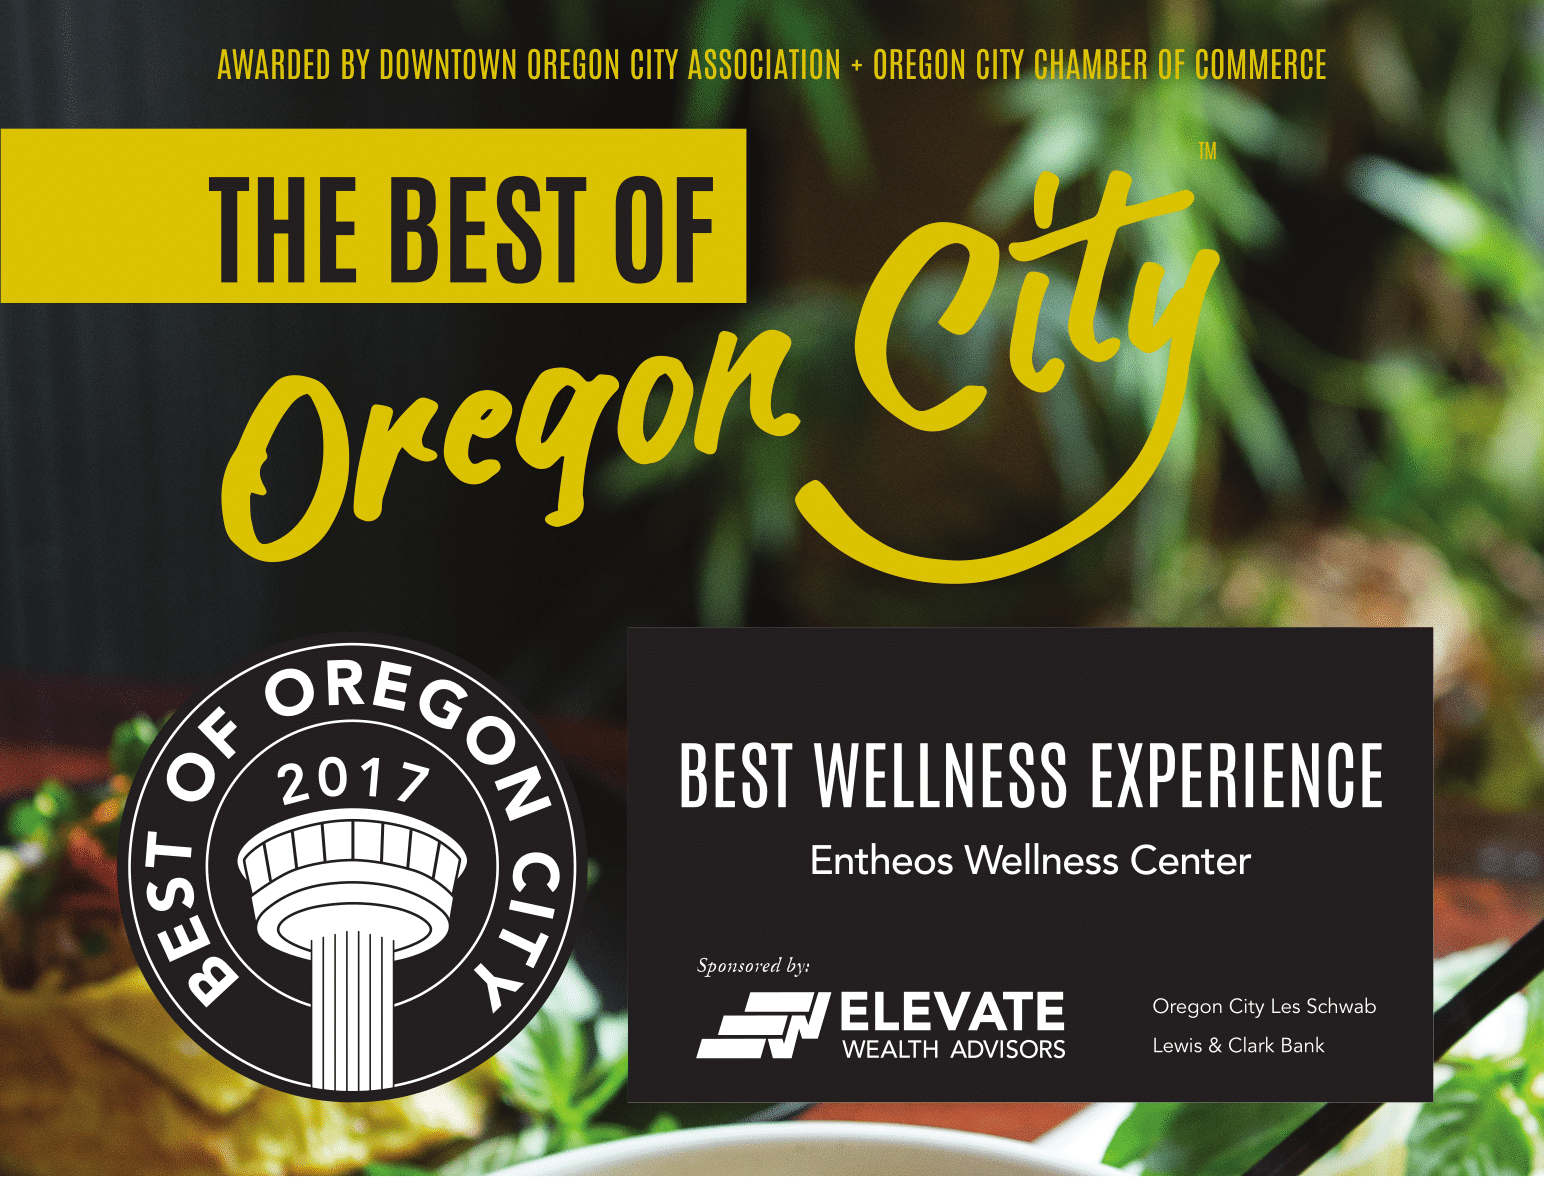 Best of Oregon City Award Winner